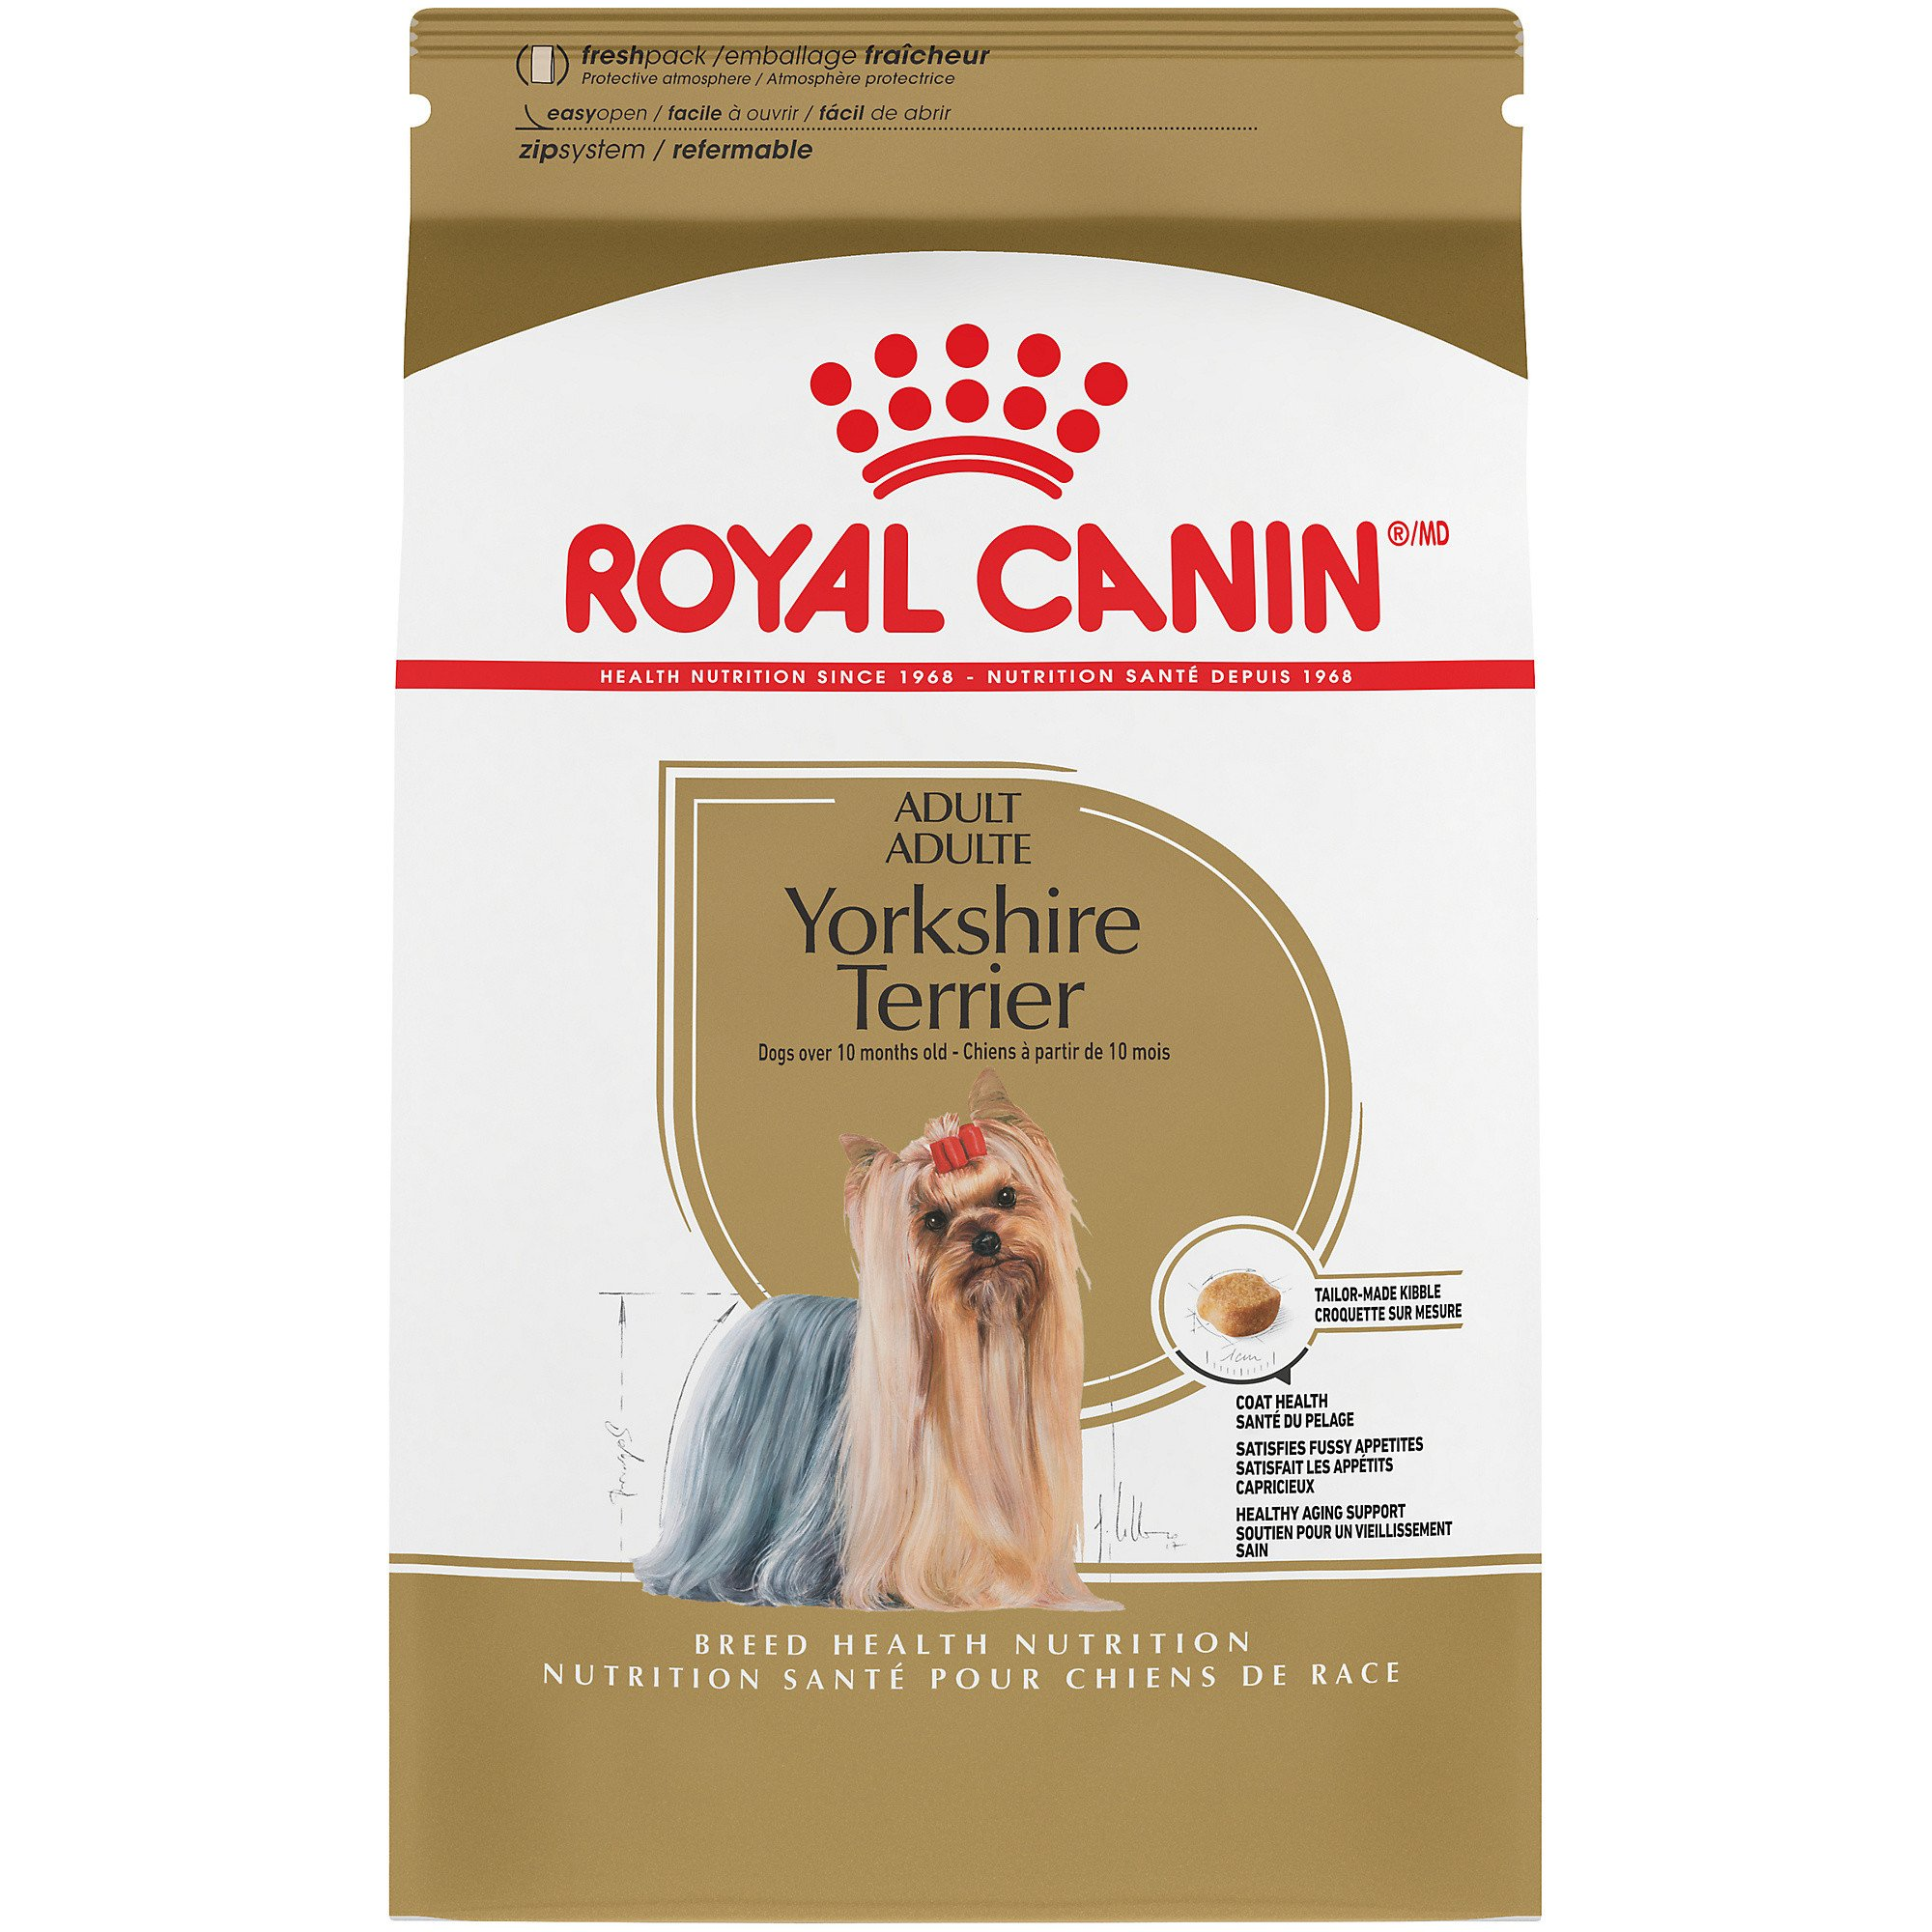 Royal Canin Breed Health Nutrition Yorkshire Terrier Adult Dry Dog Food, 10 lbs.